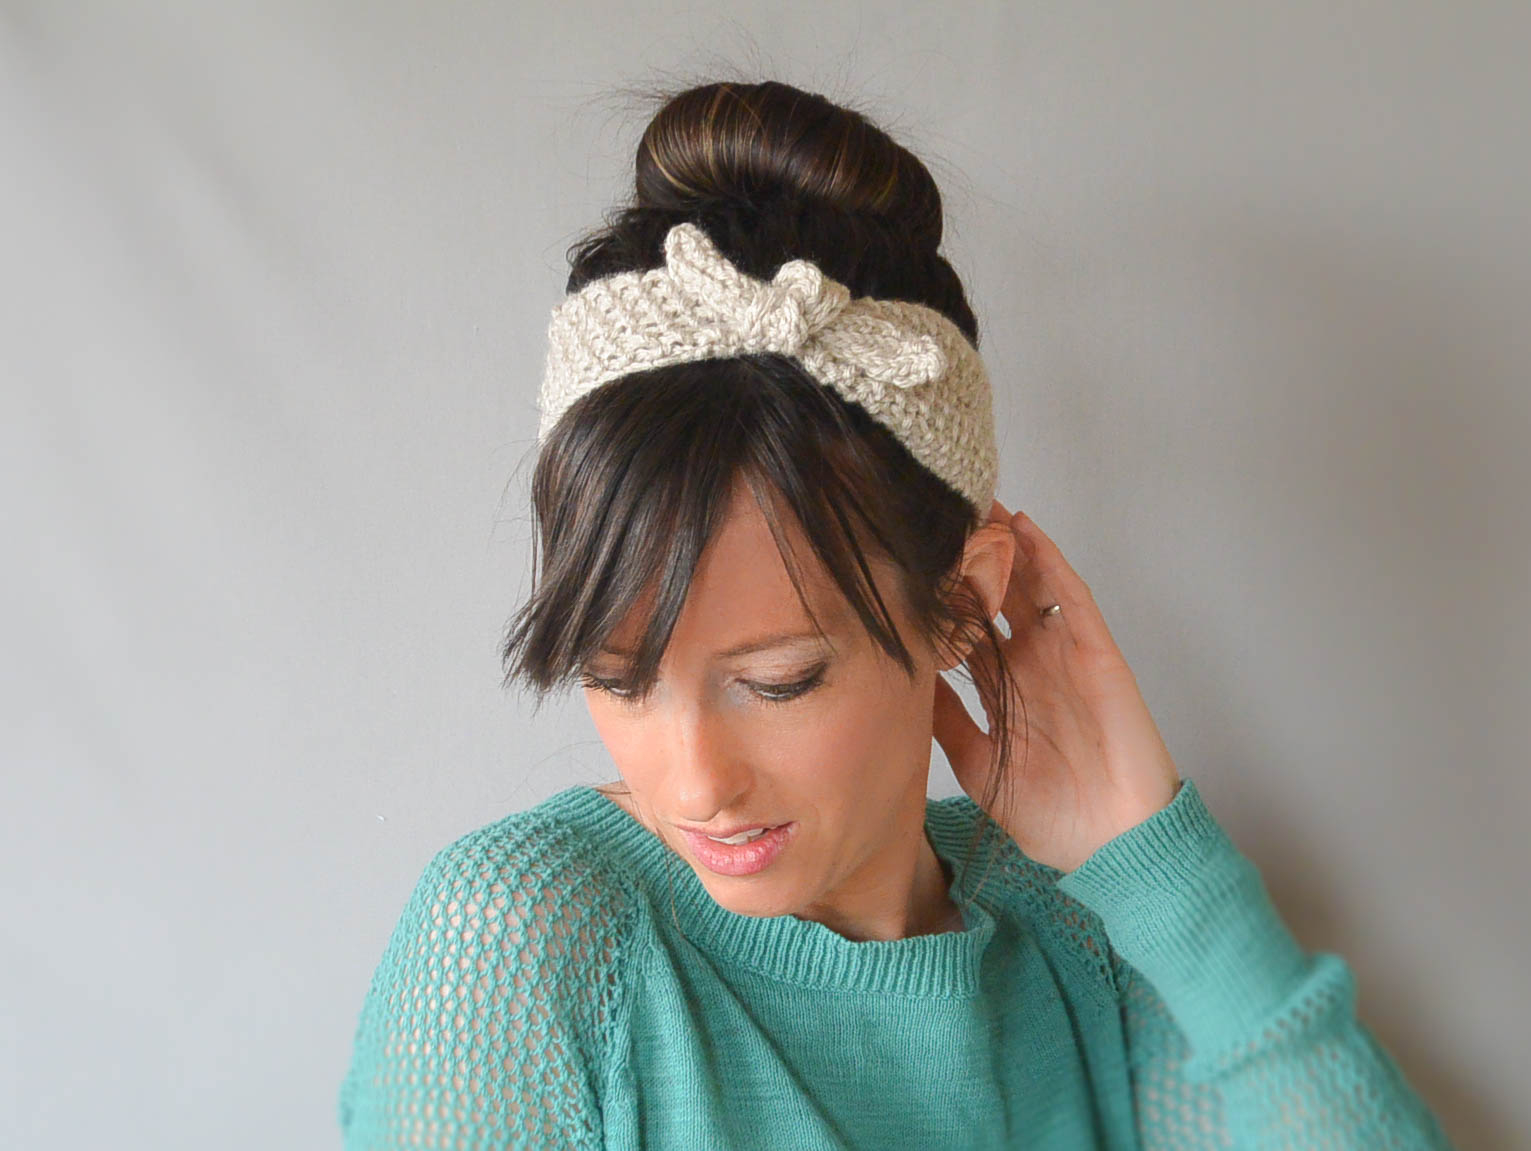 Knit Headband Pattern With Flower Knit Headband To Style Your Hair Crochet And Knitting Patterns 2019